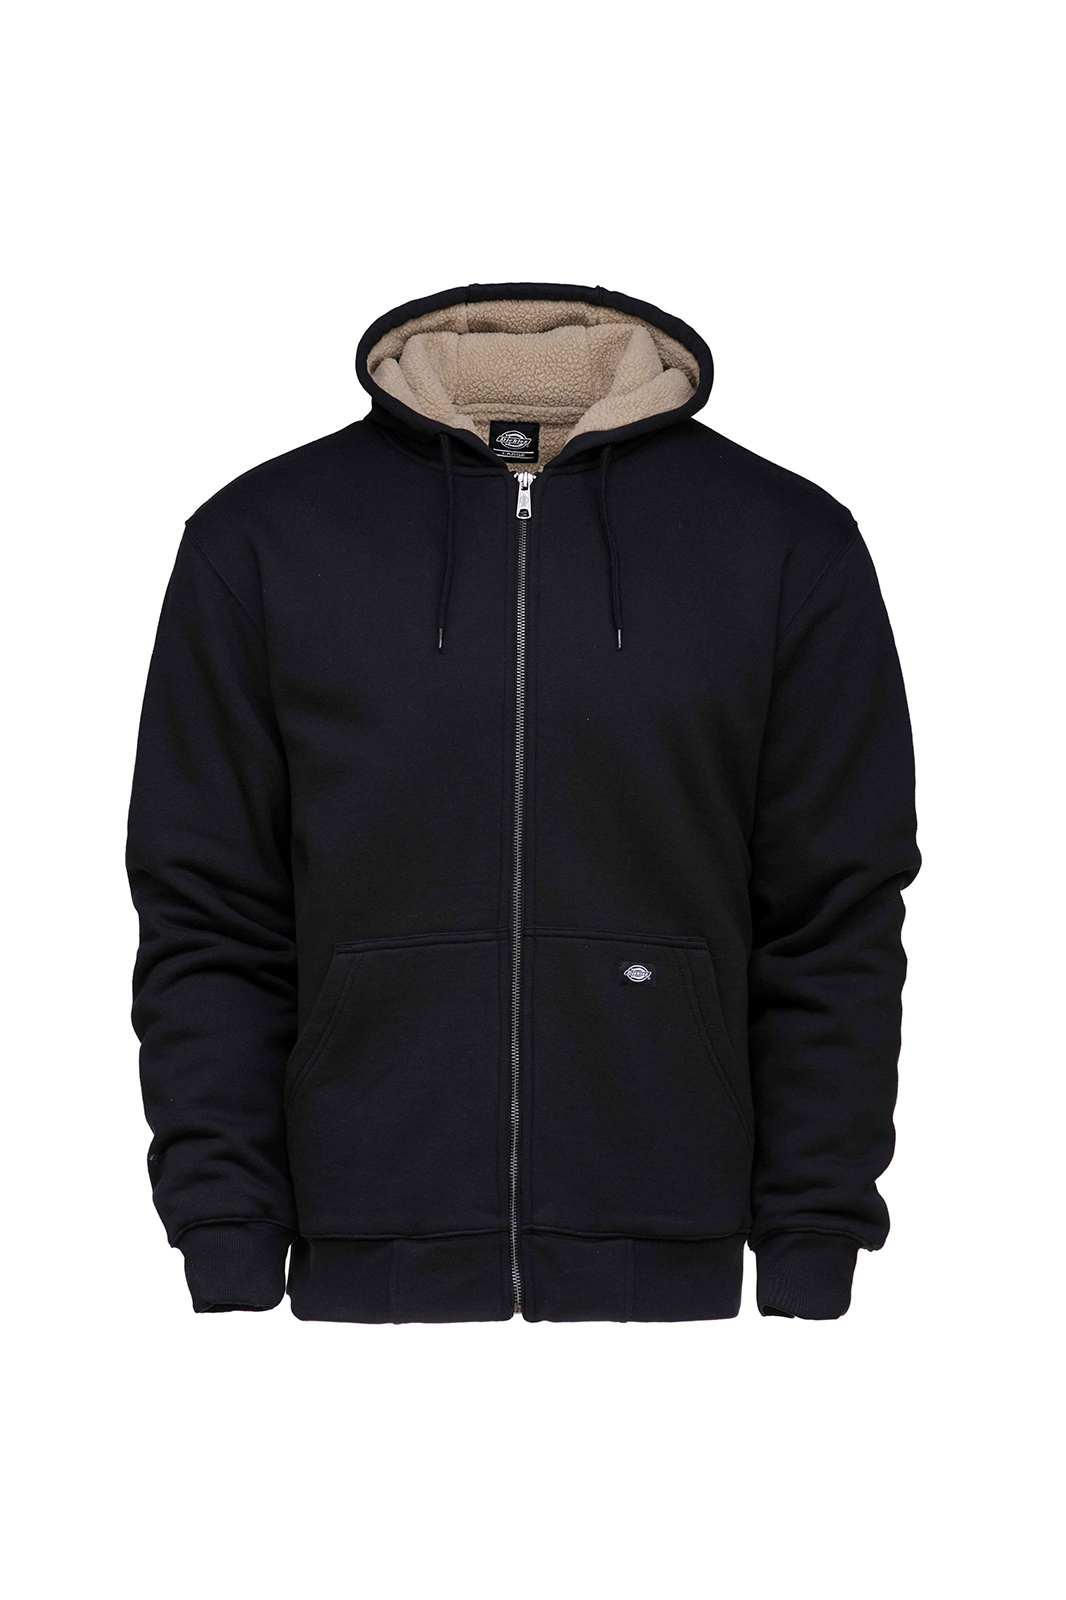 Frenchburg Hoody Black